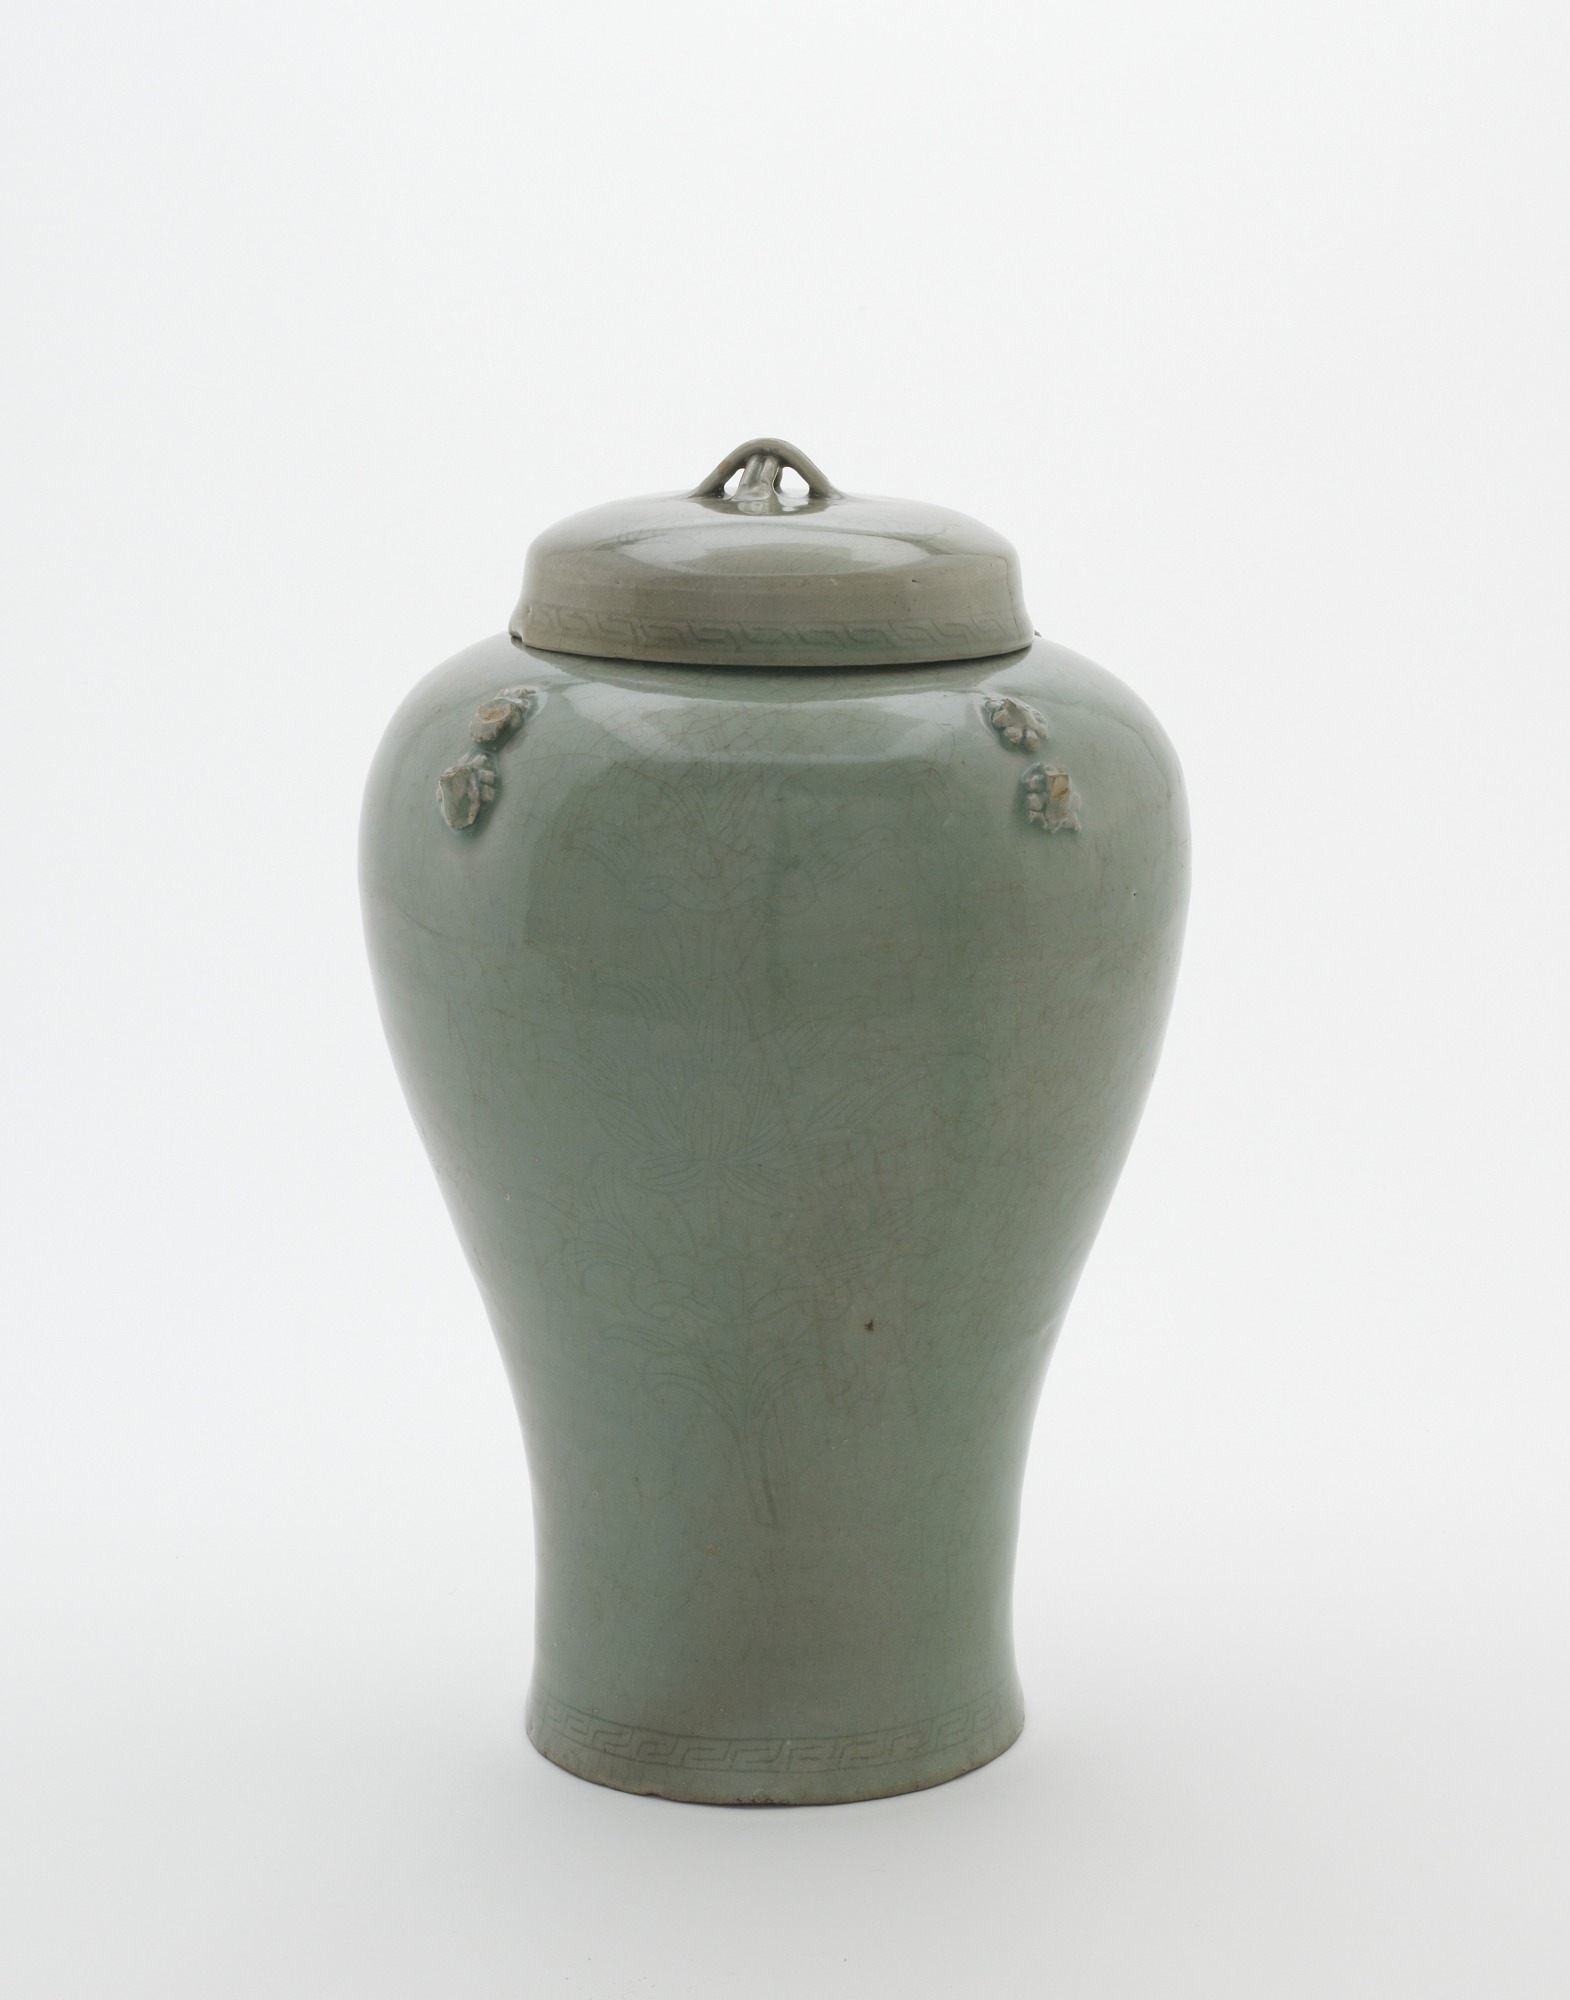 Jar with lid, profile with lid